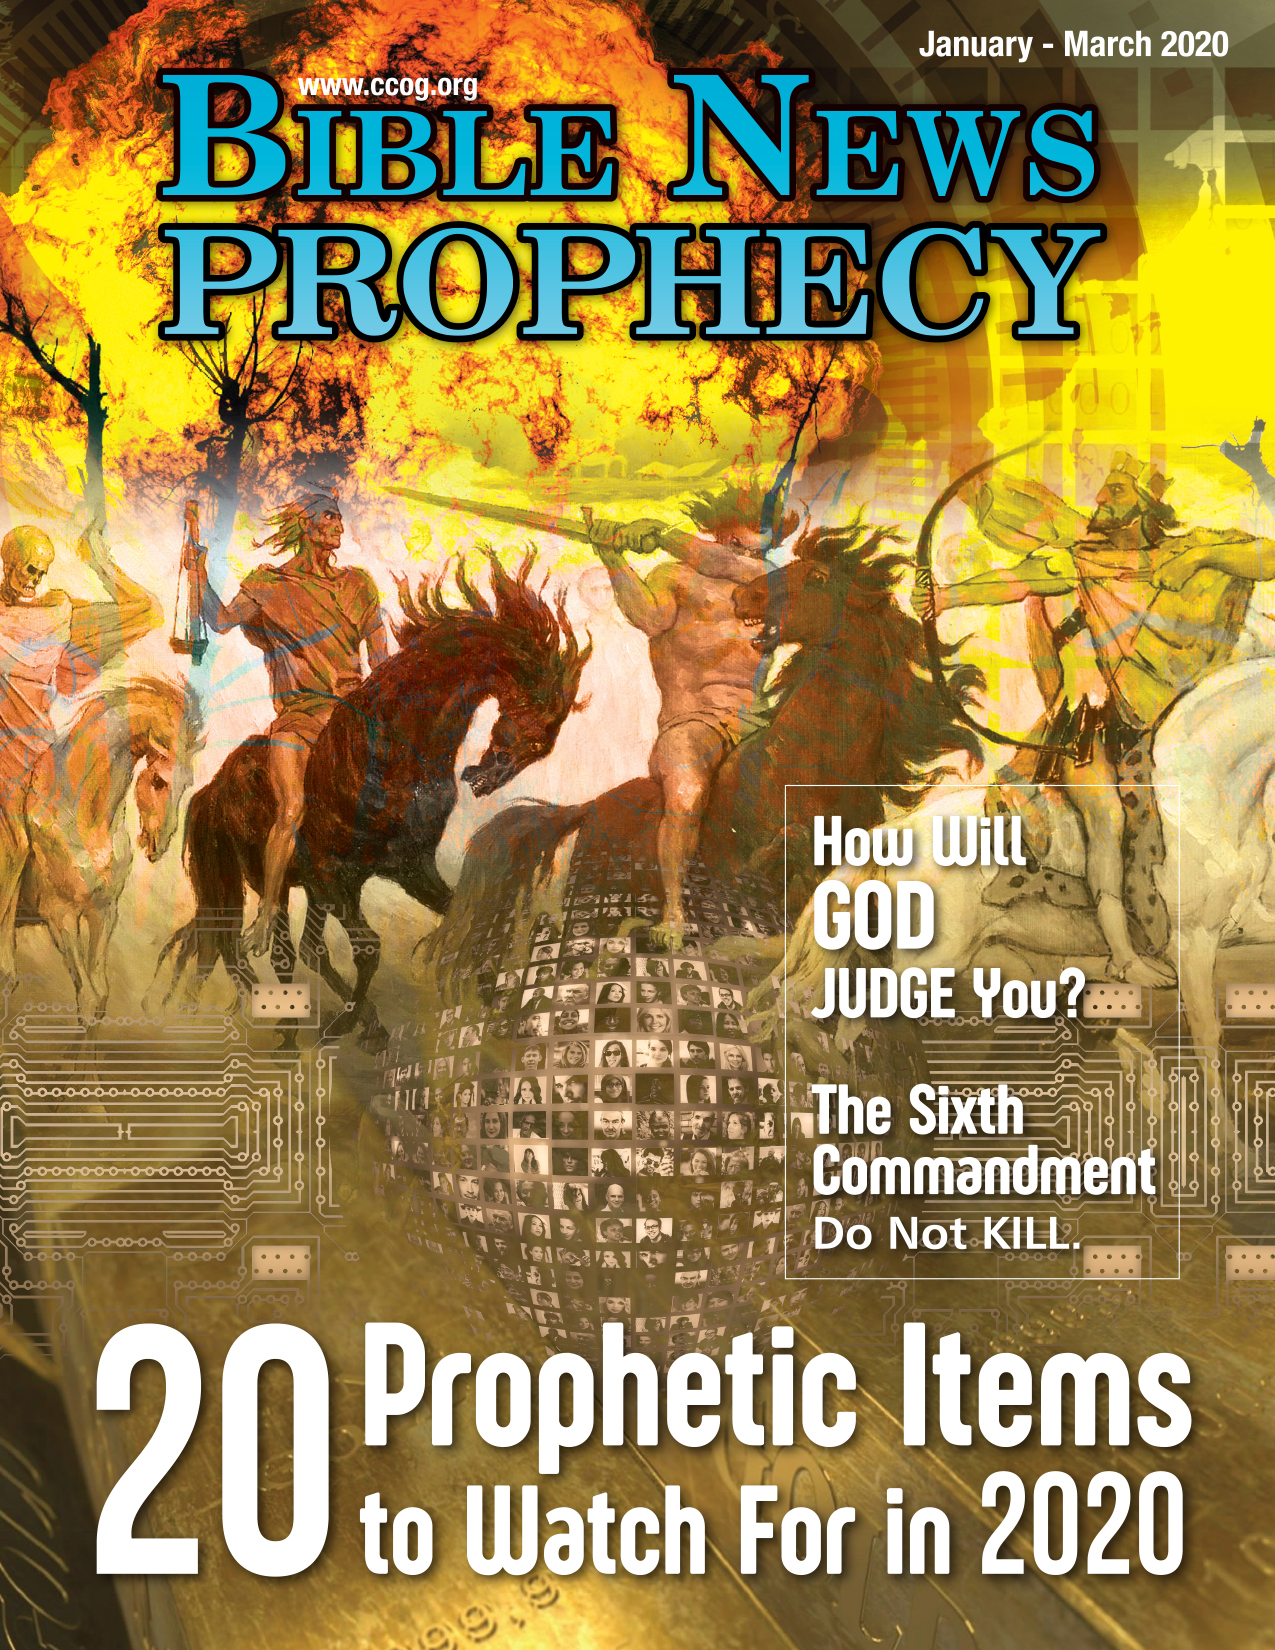 Bible News Prophecy January – March 2020: 20 Prophetic Items to Watch For in 2020